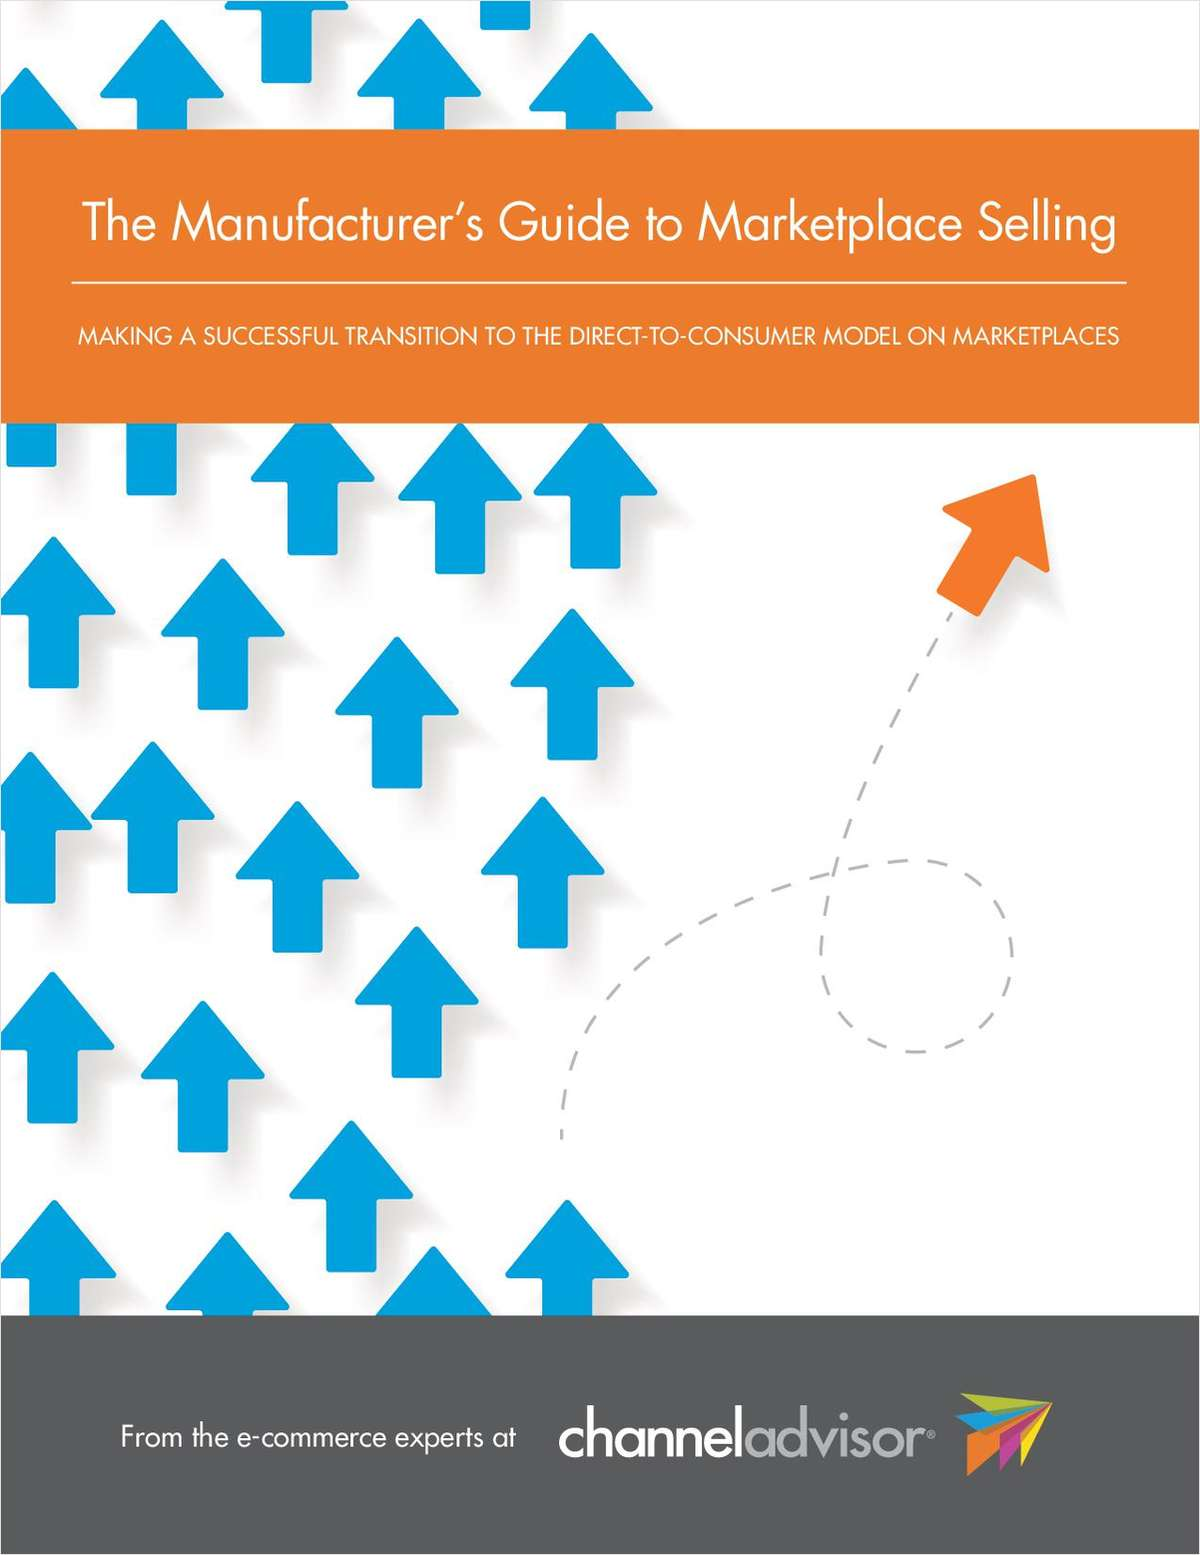 The Manufacturer's Guide to Marketplace Selling